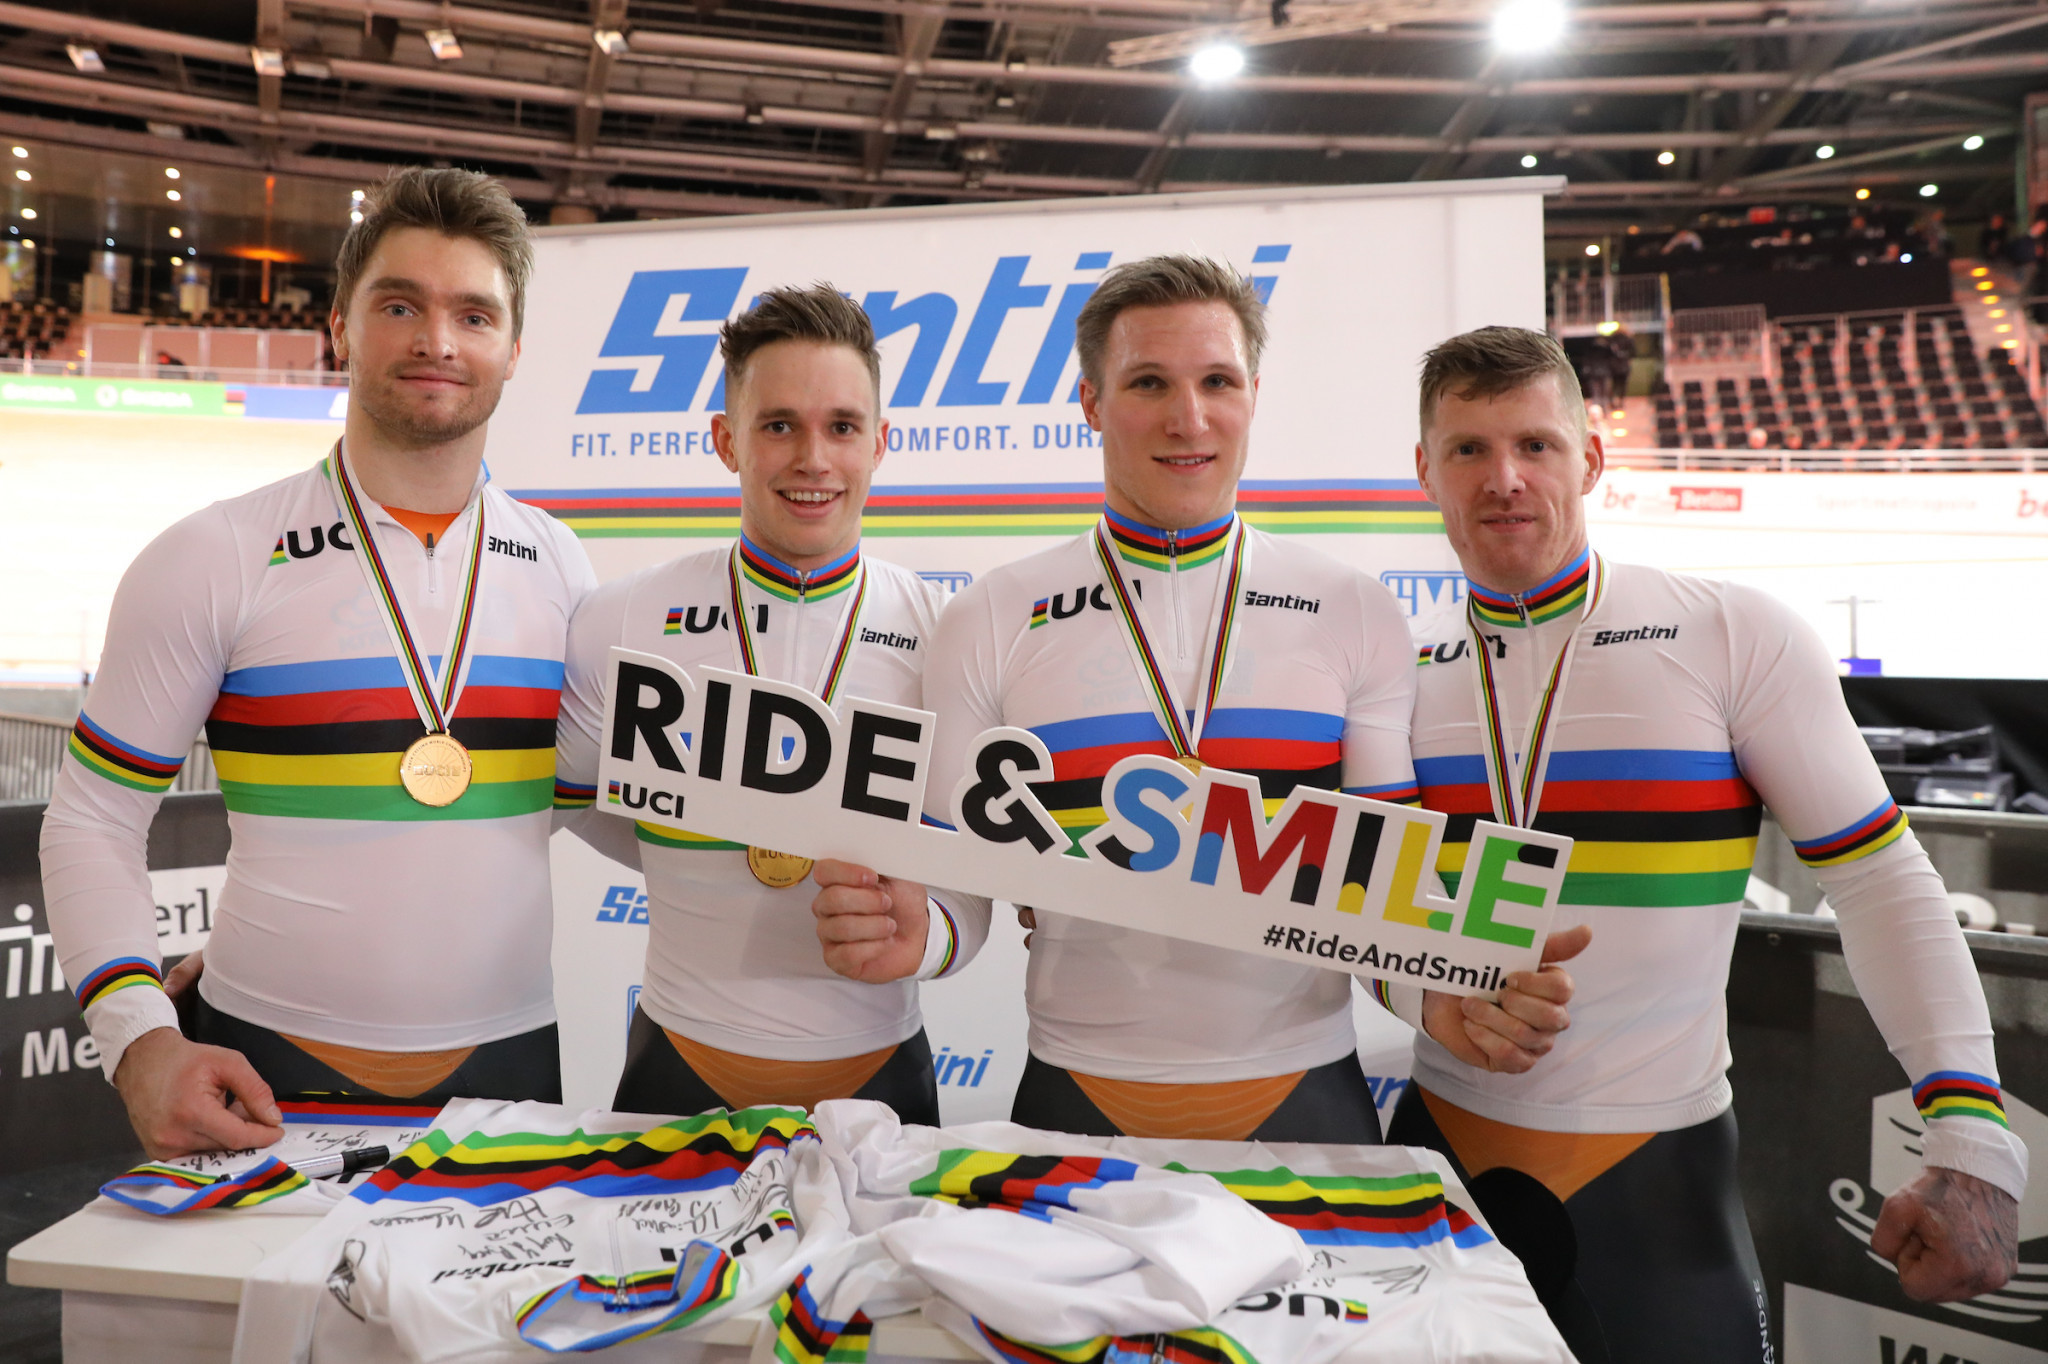 Gold and world record for Netherlands in men's team sprint on opening day of World Track Cycling Championships